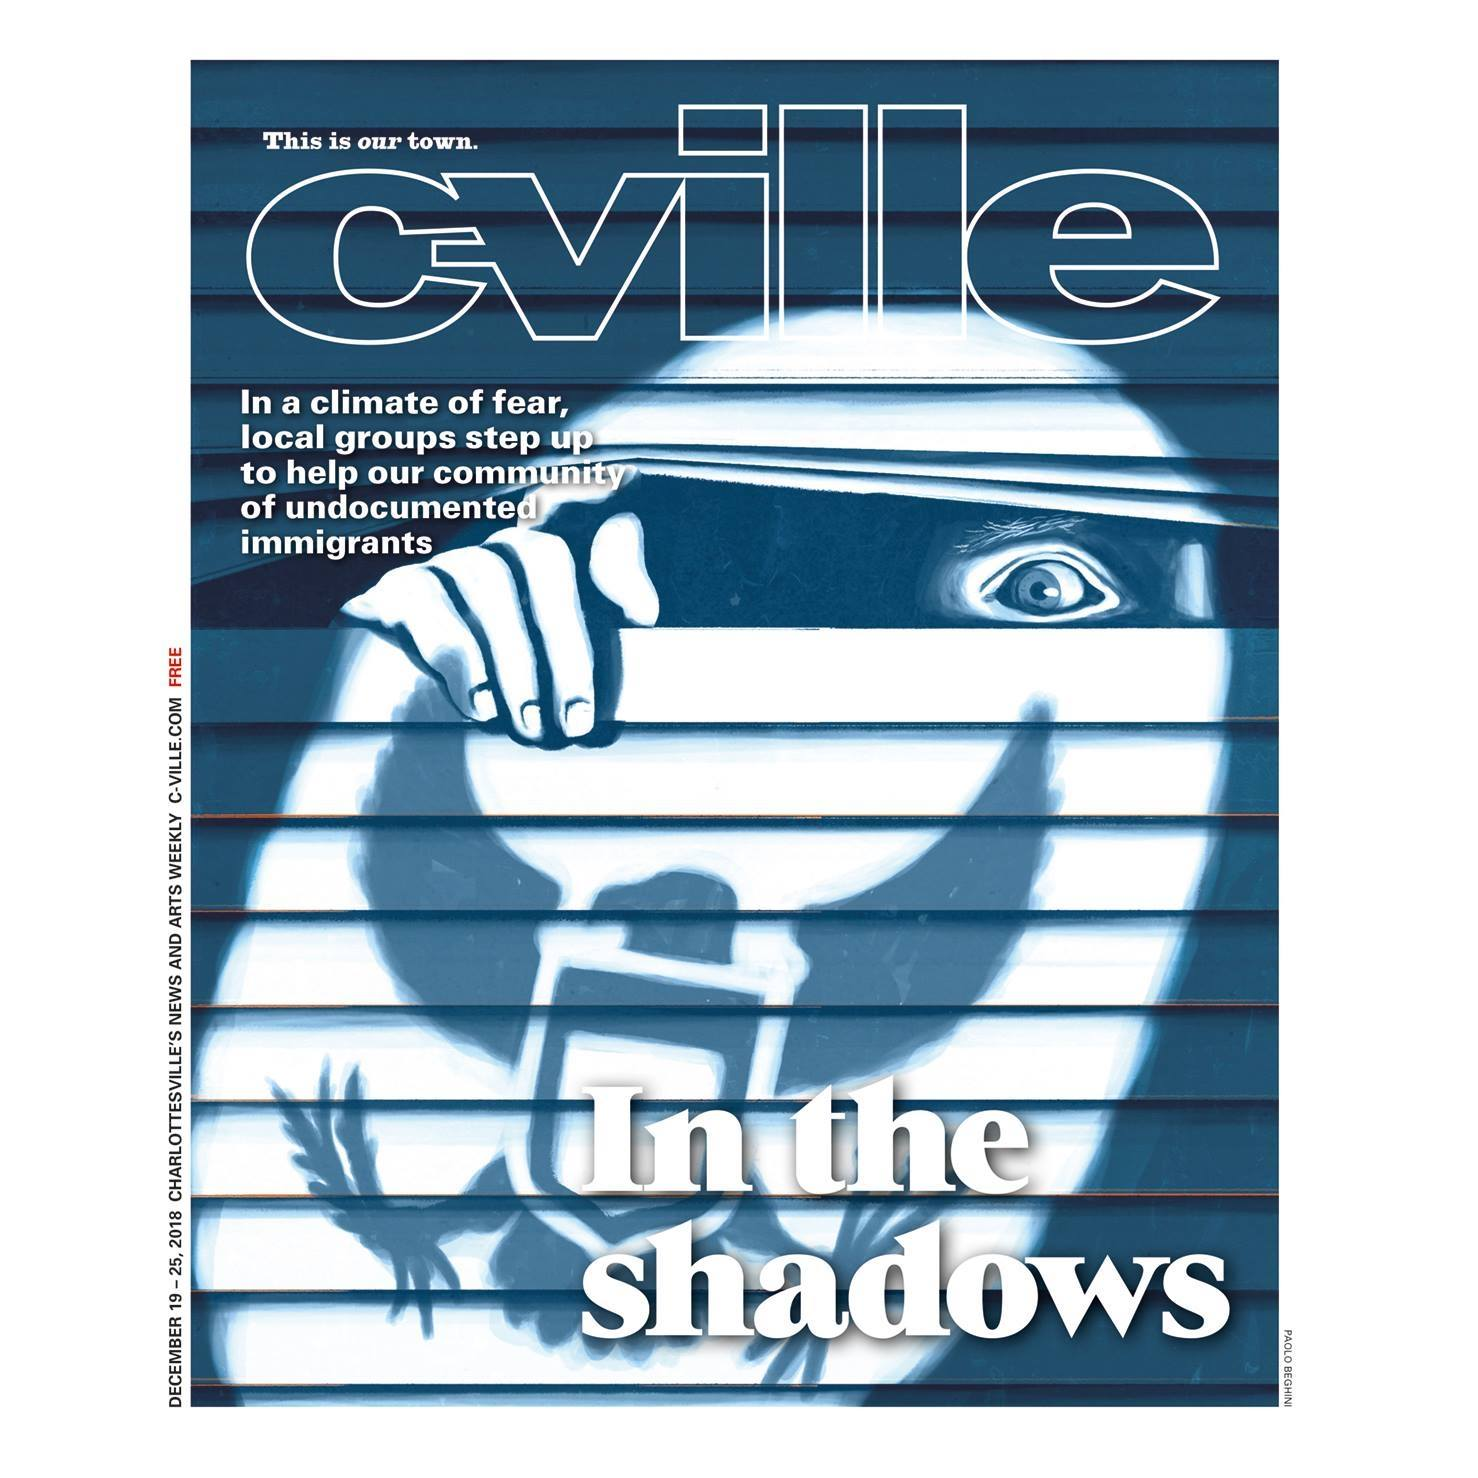 C-ville cover about how immigrants are forced to live in shadow in USA